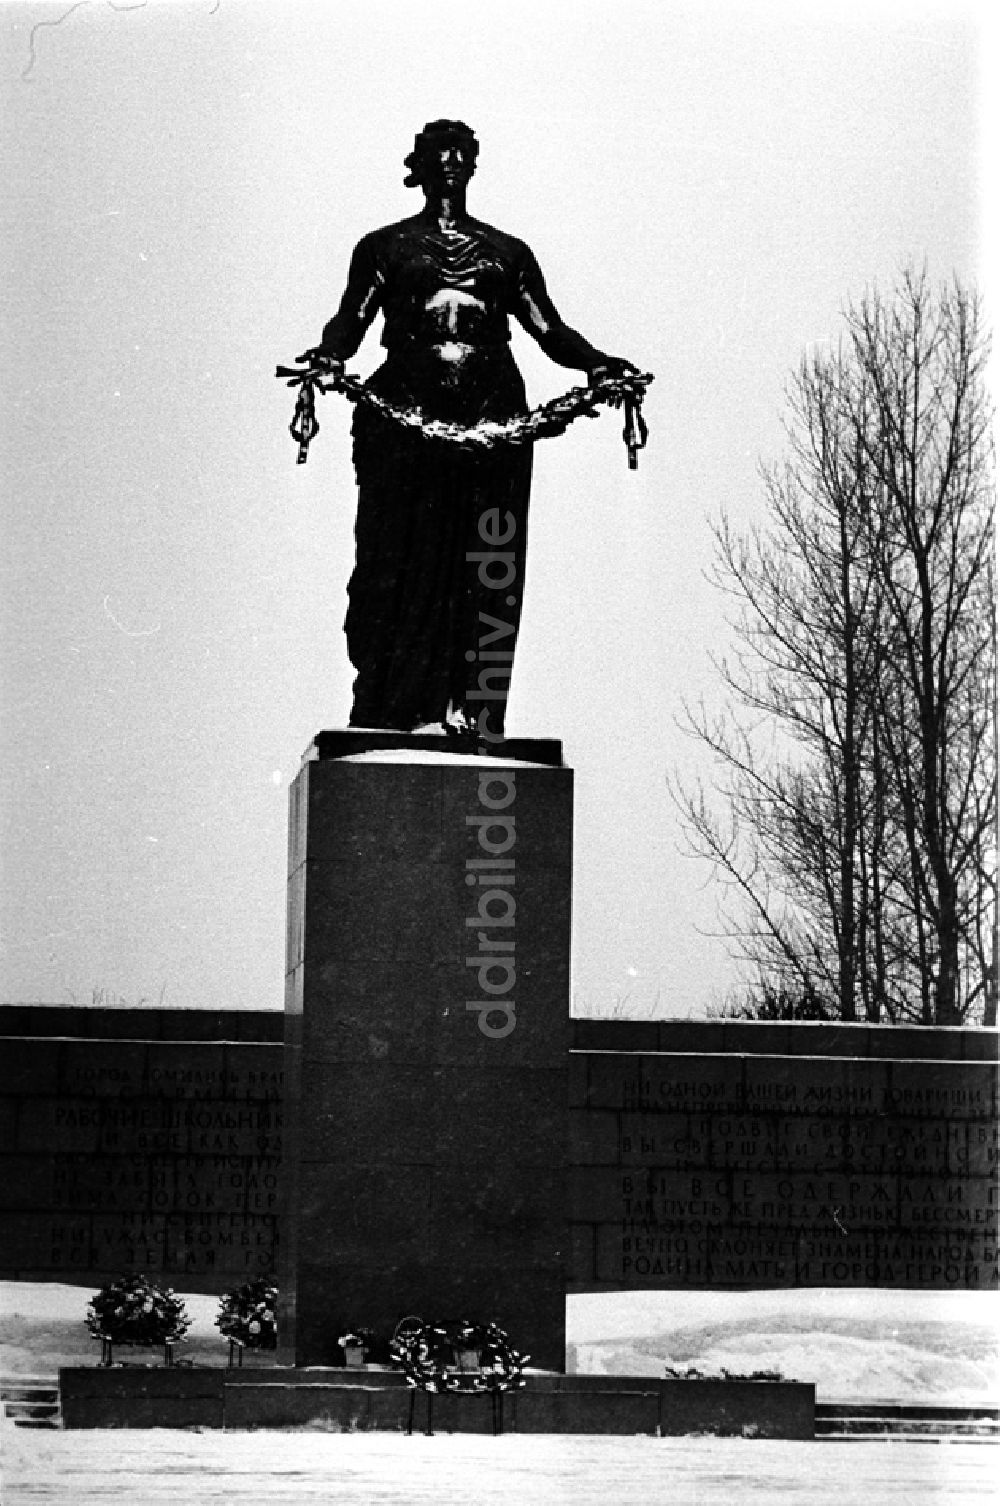 DDR-Fotoarchiv: Leningrad - Mutter-Heimat-Denkmal in Leningrad